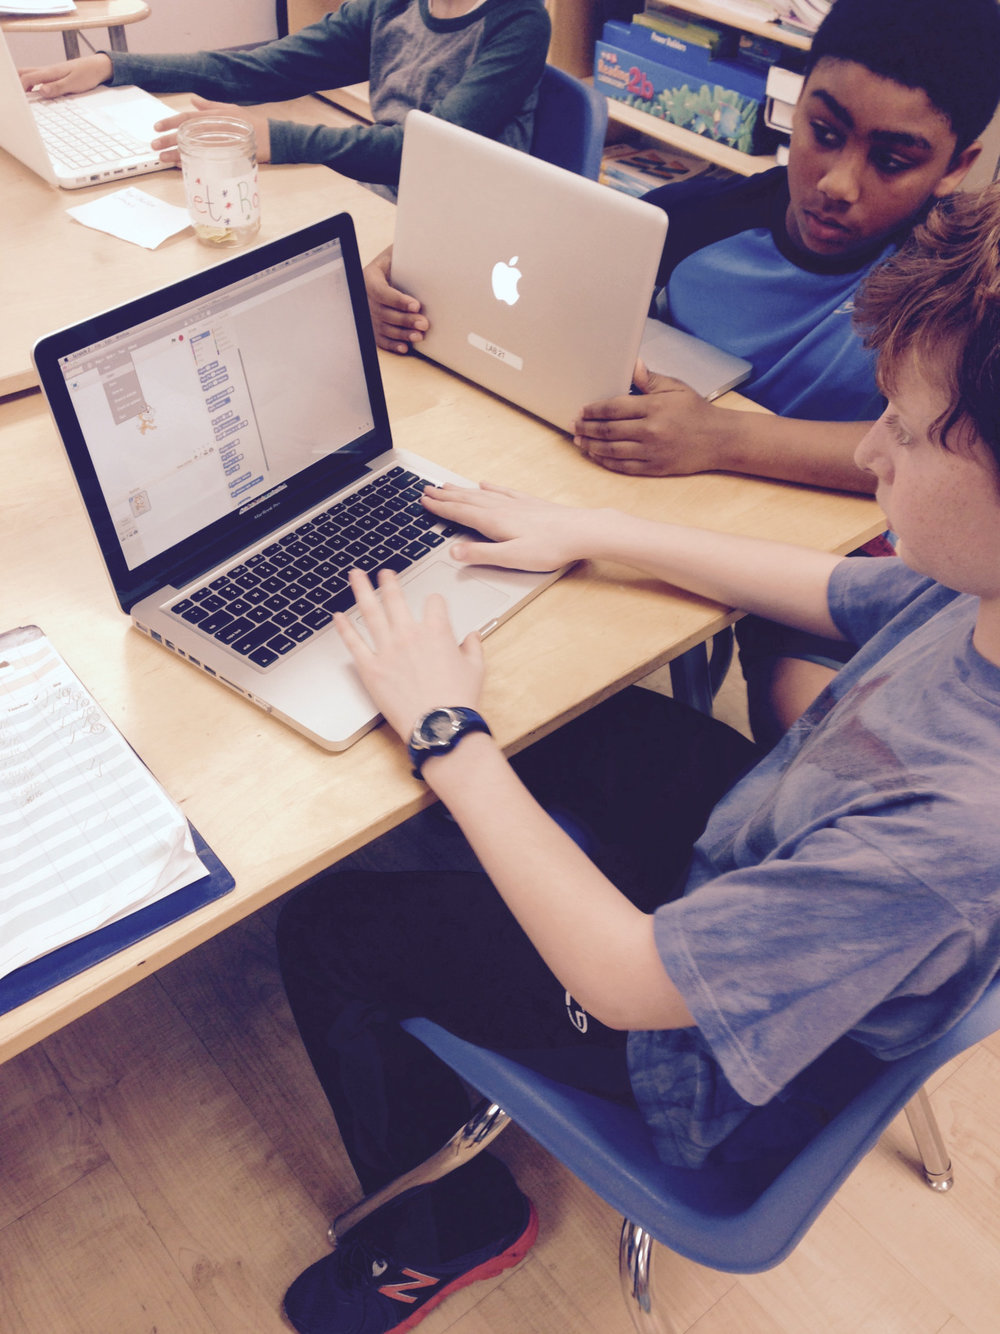 As part of their Technology studies, fifth grade Upper Elementary students finished their Scratch programming projects